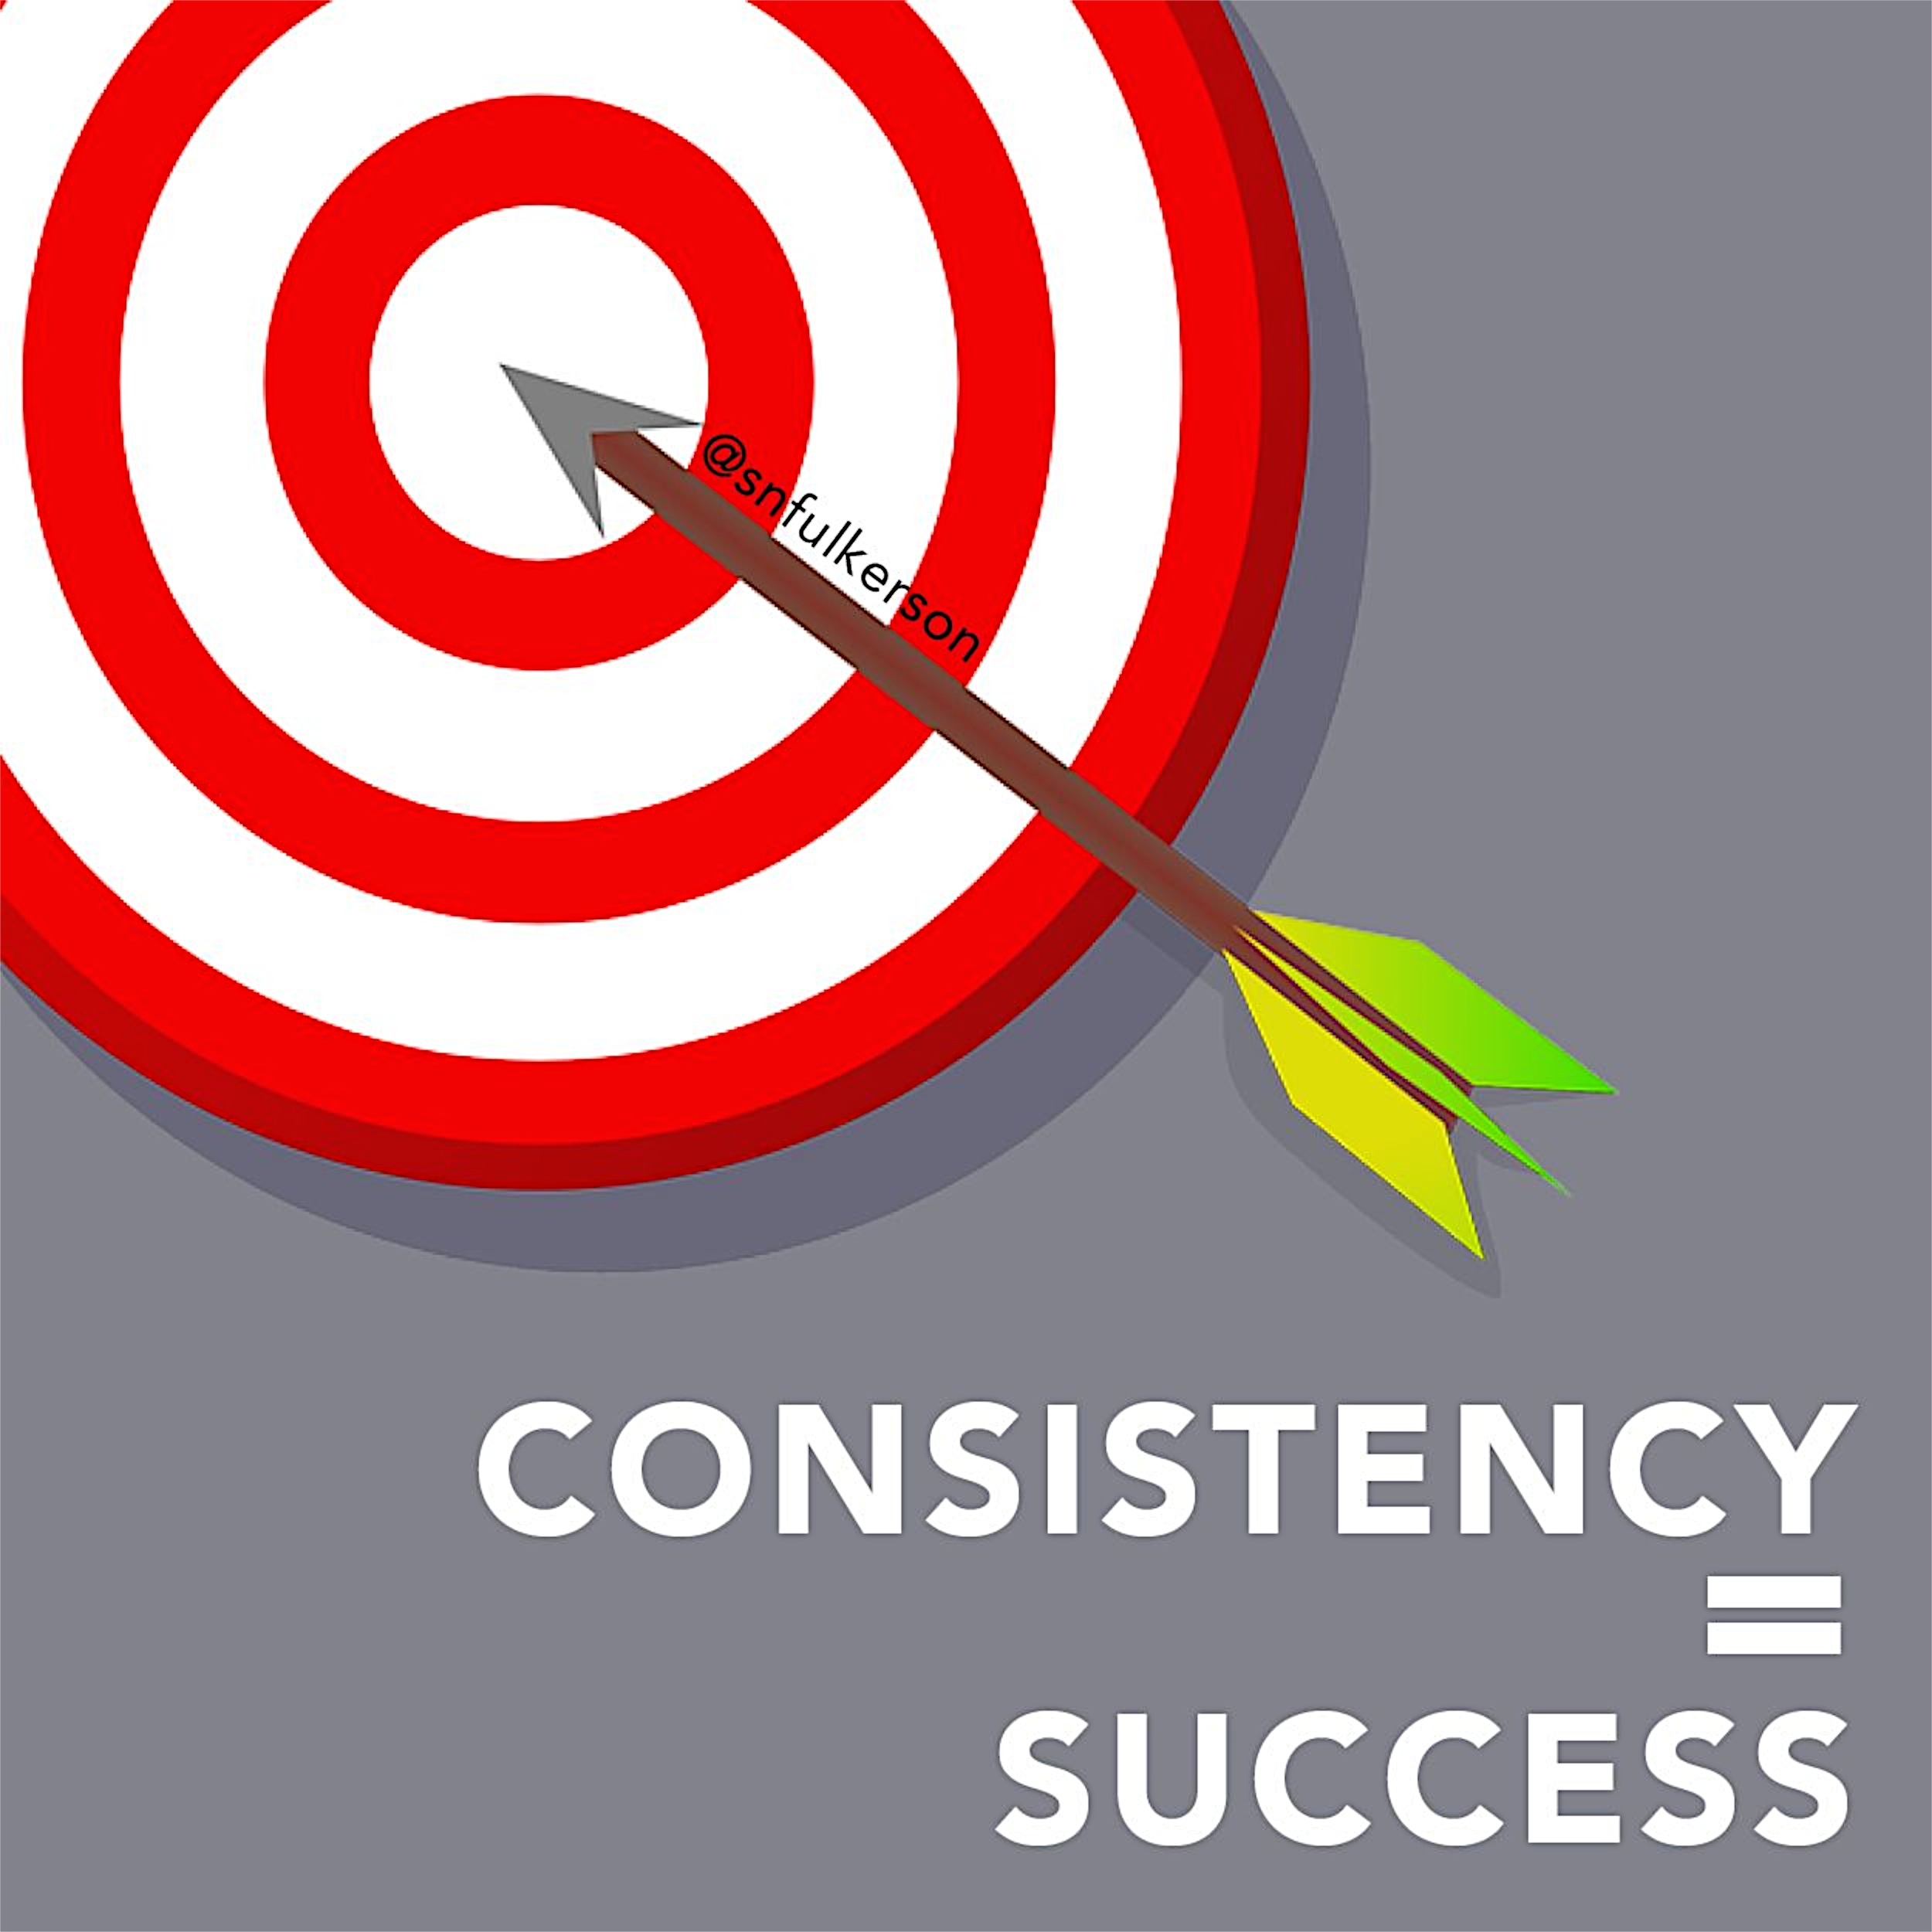 Cover image for  article: The Powerful Correlation Between Consistency and Success